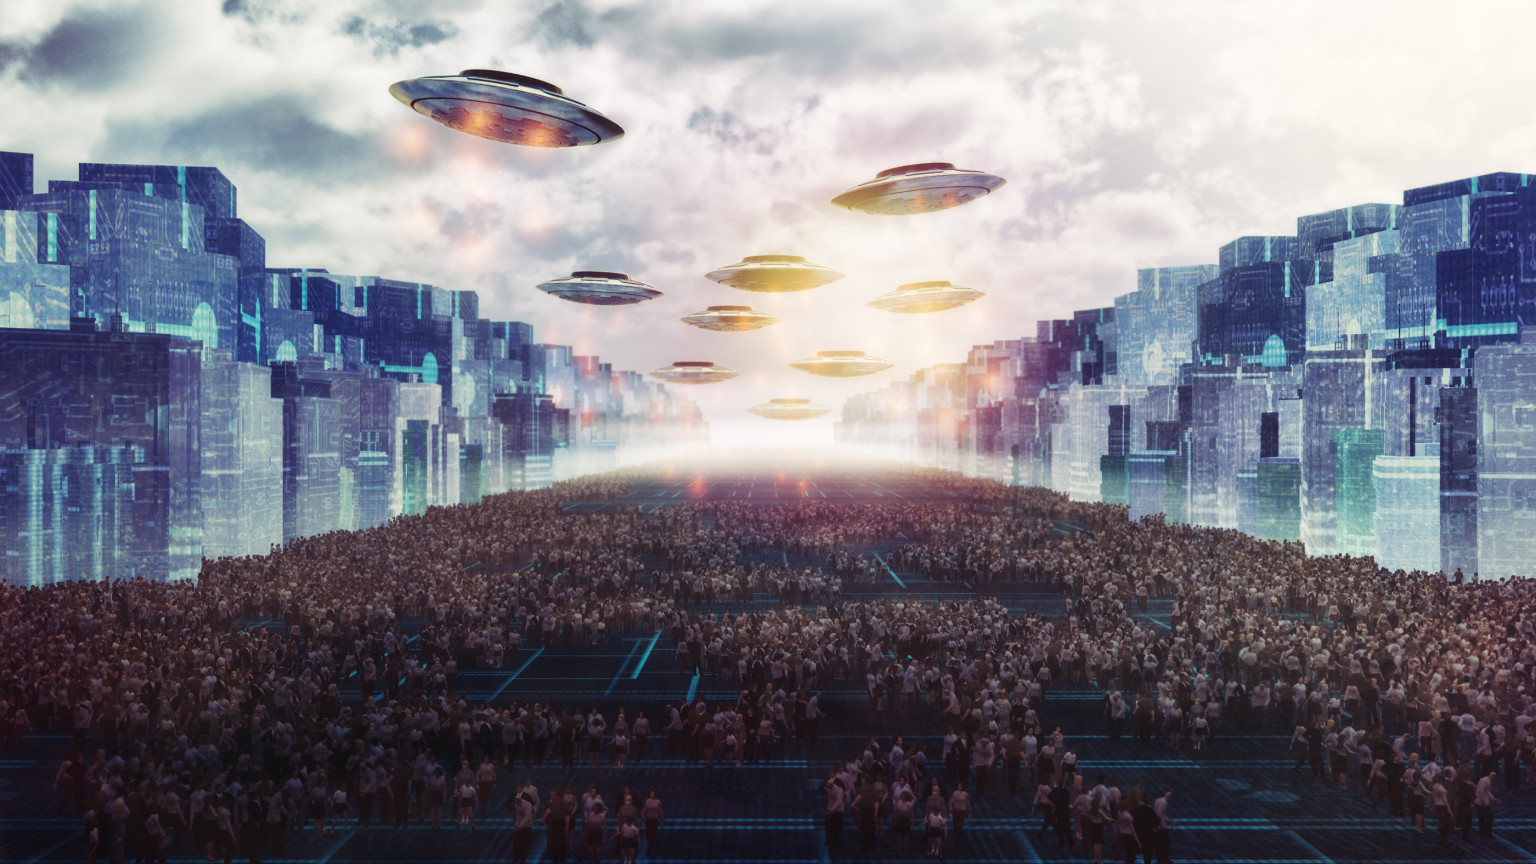 abductee painter channels aliens in his art huffpost